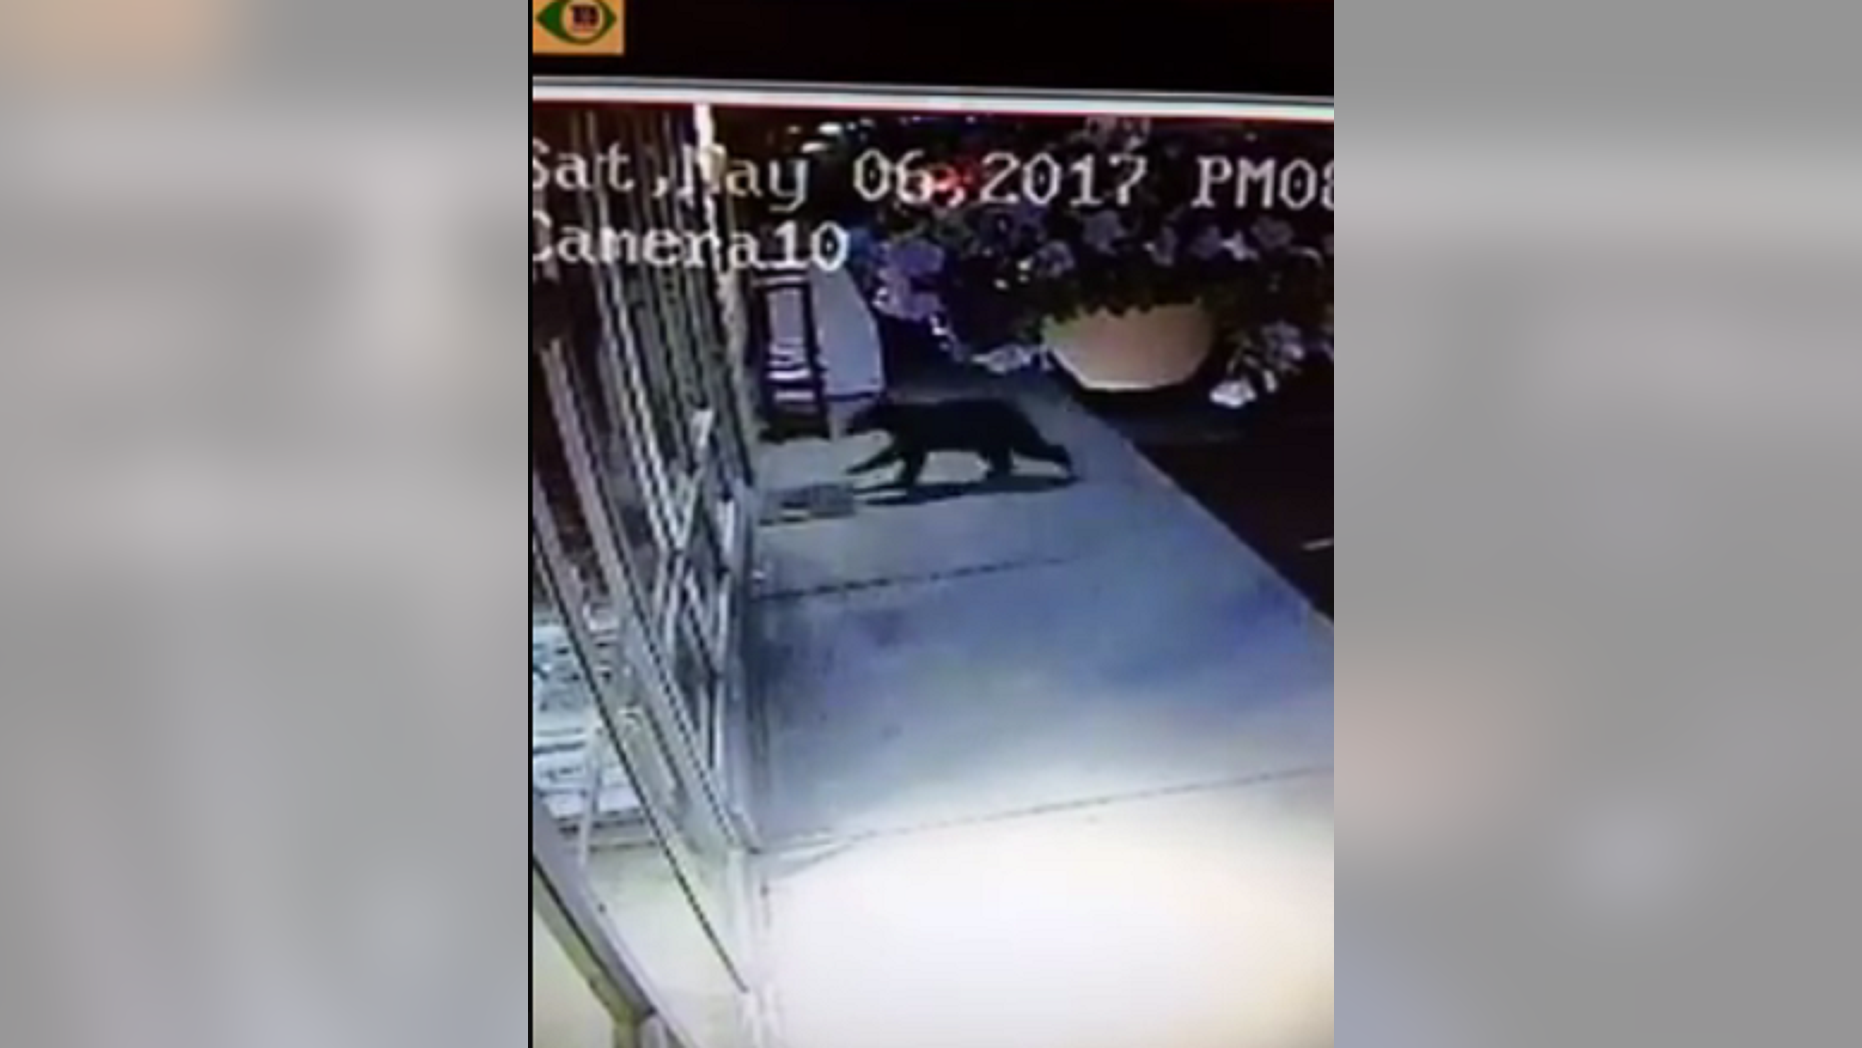 A surveillance video from Coulee Hardware in Washington captured a black bear crashing into the store's front window on May 6, 2017.